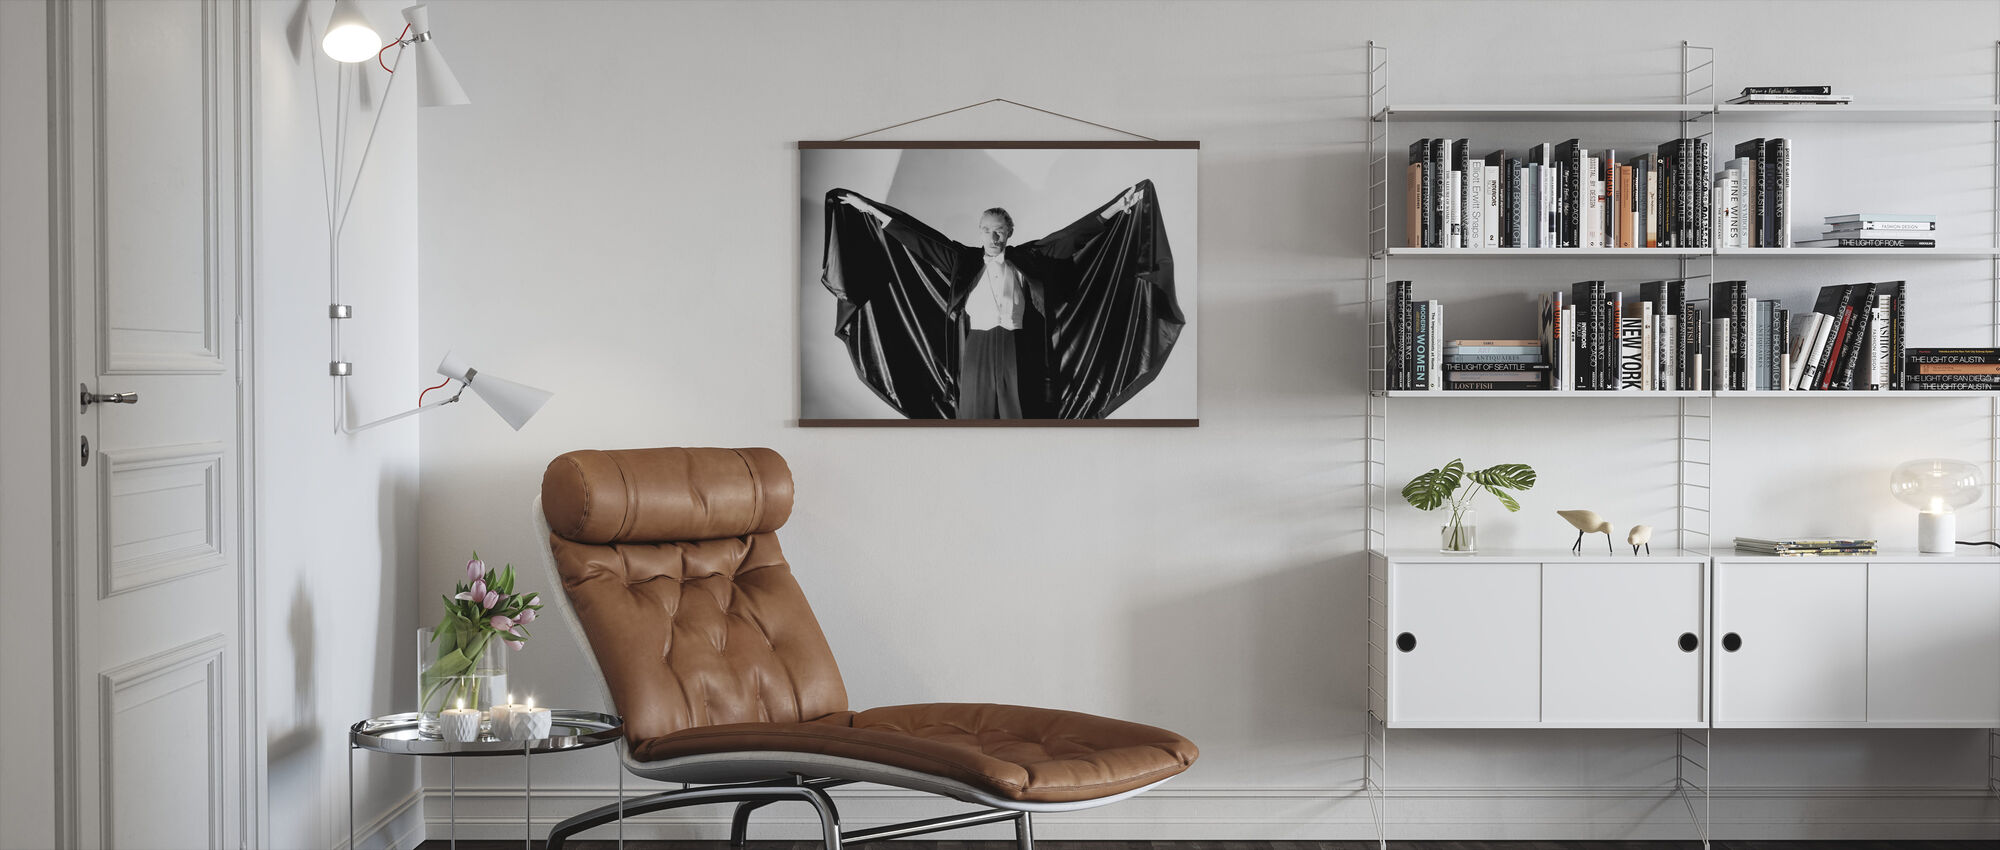 House of Dracula II - Poster - Living Room